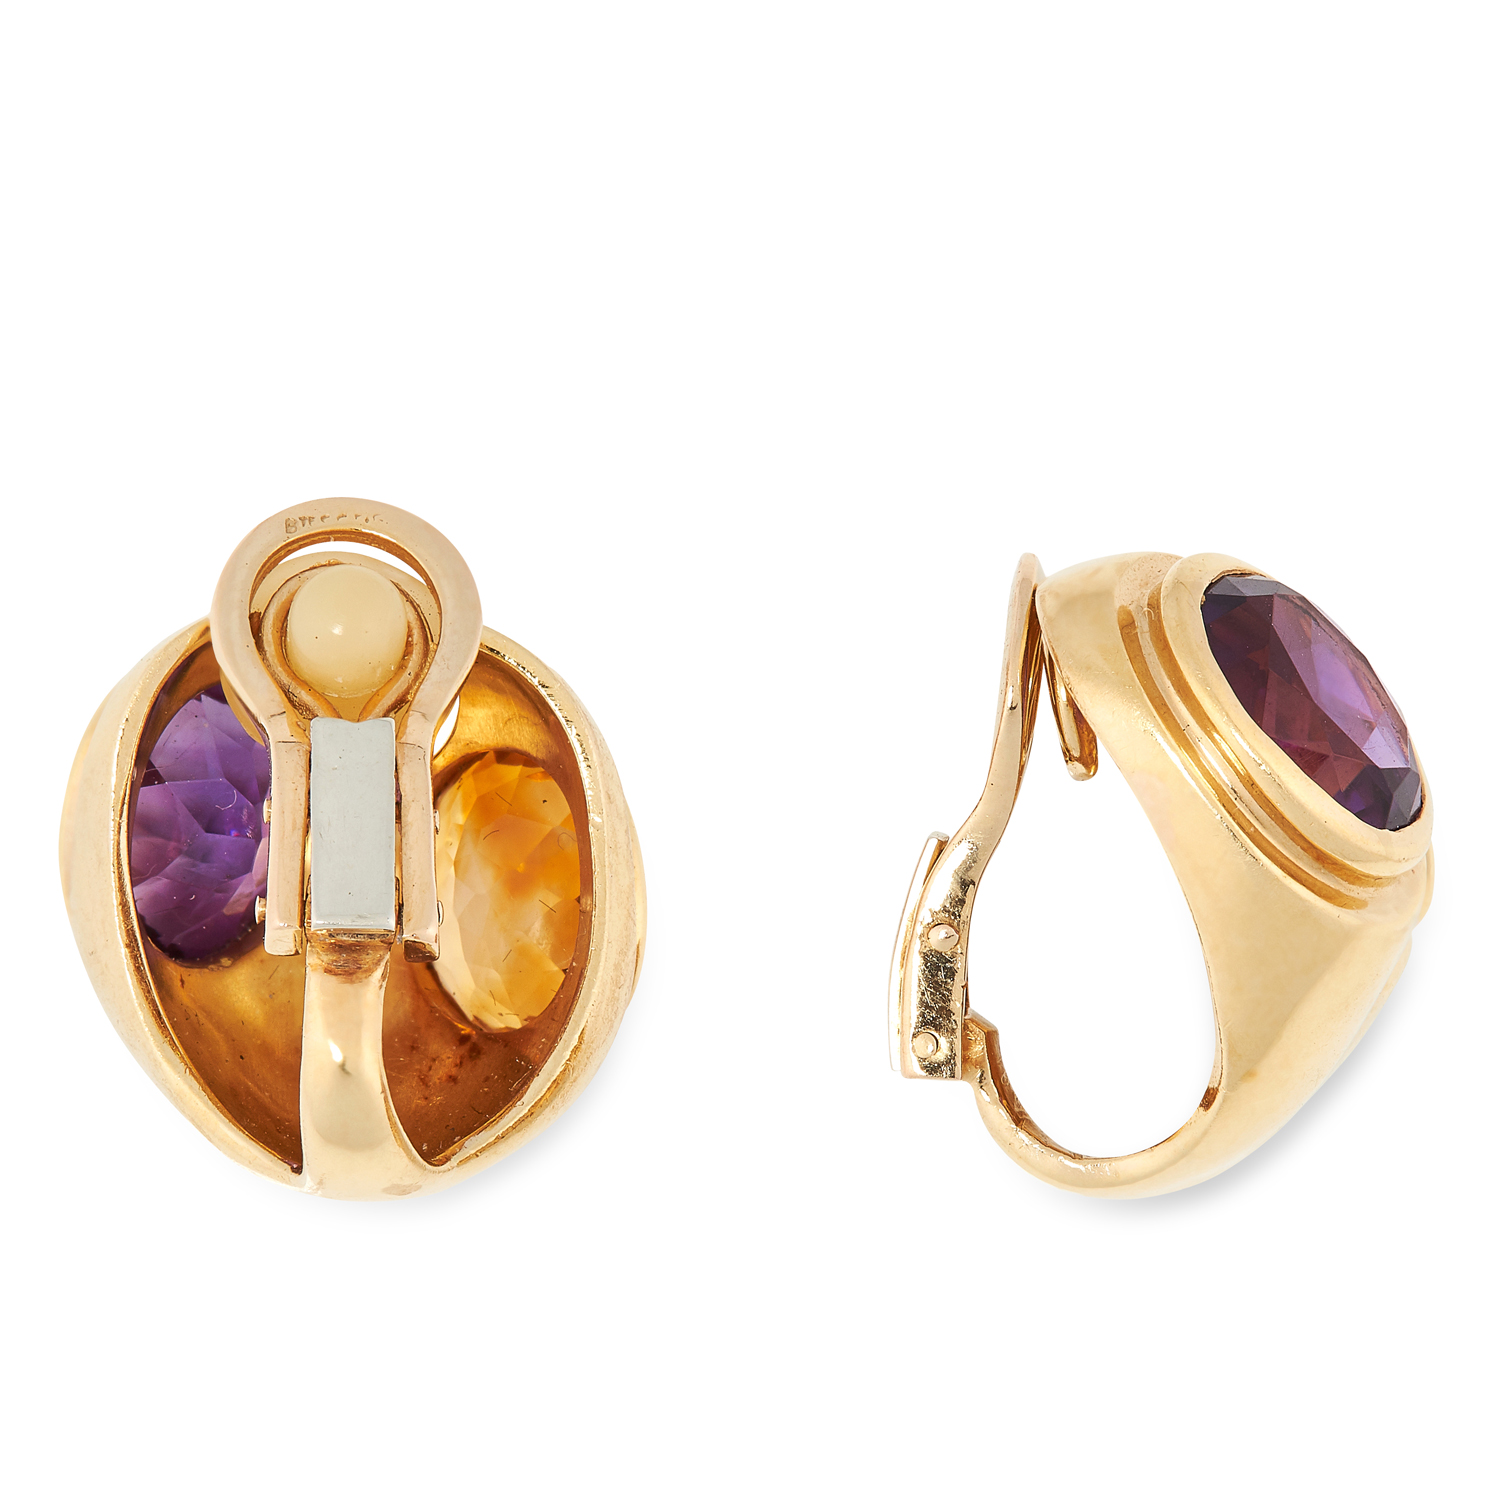 AN AMETHYST AND CITRINE RING AND EARRINGS SUITE, PARTLY BY TIFFANY & CO each set with oval cut - Image 5 of 5